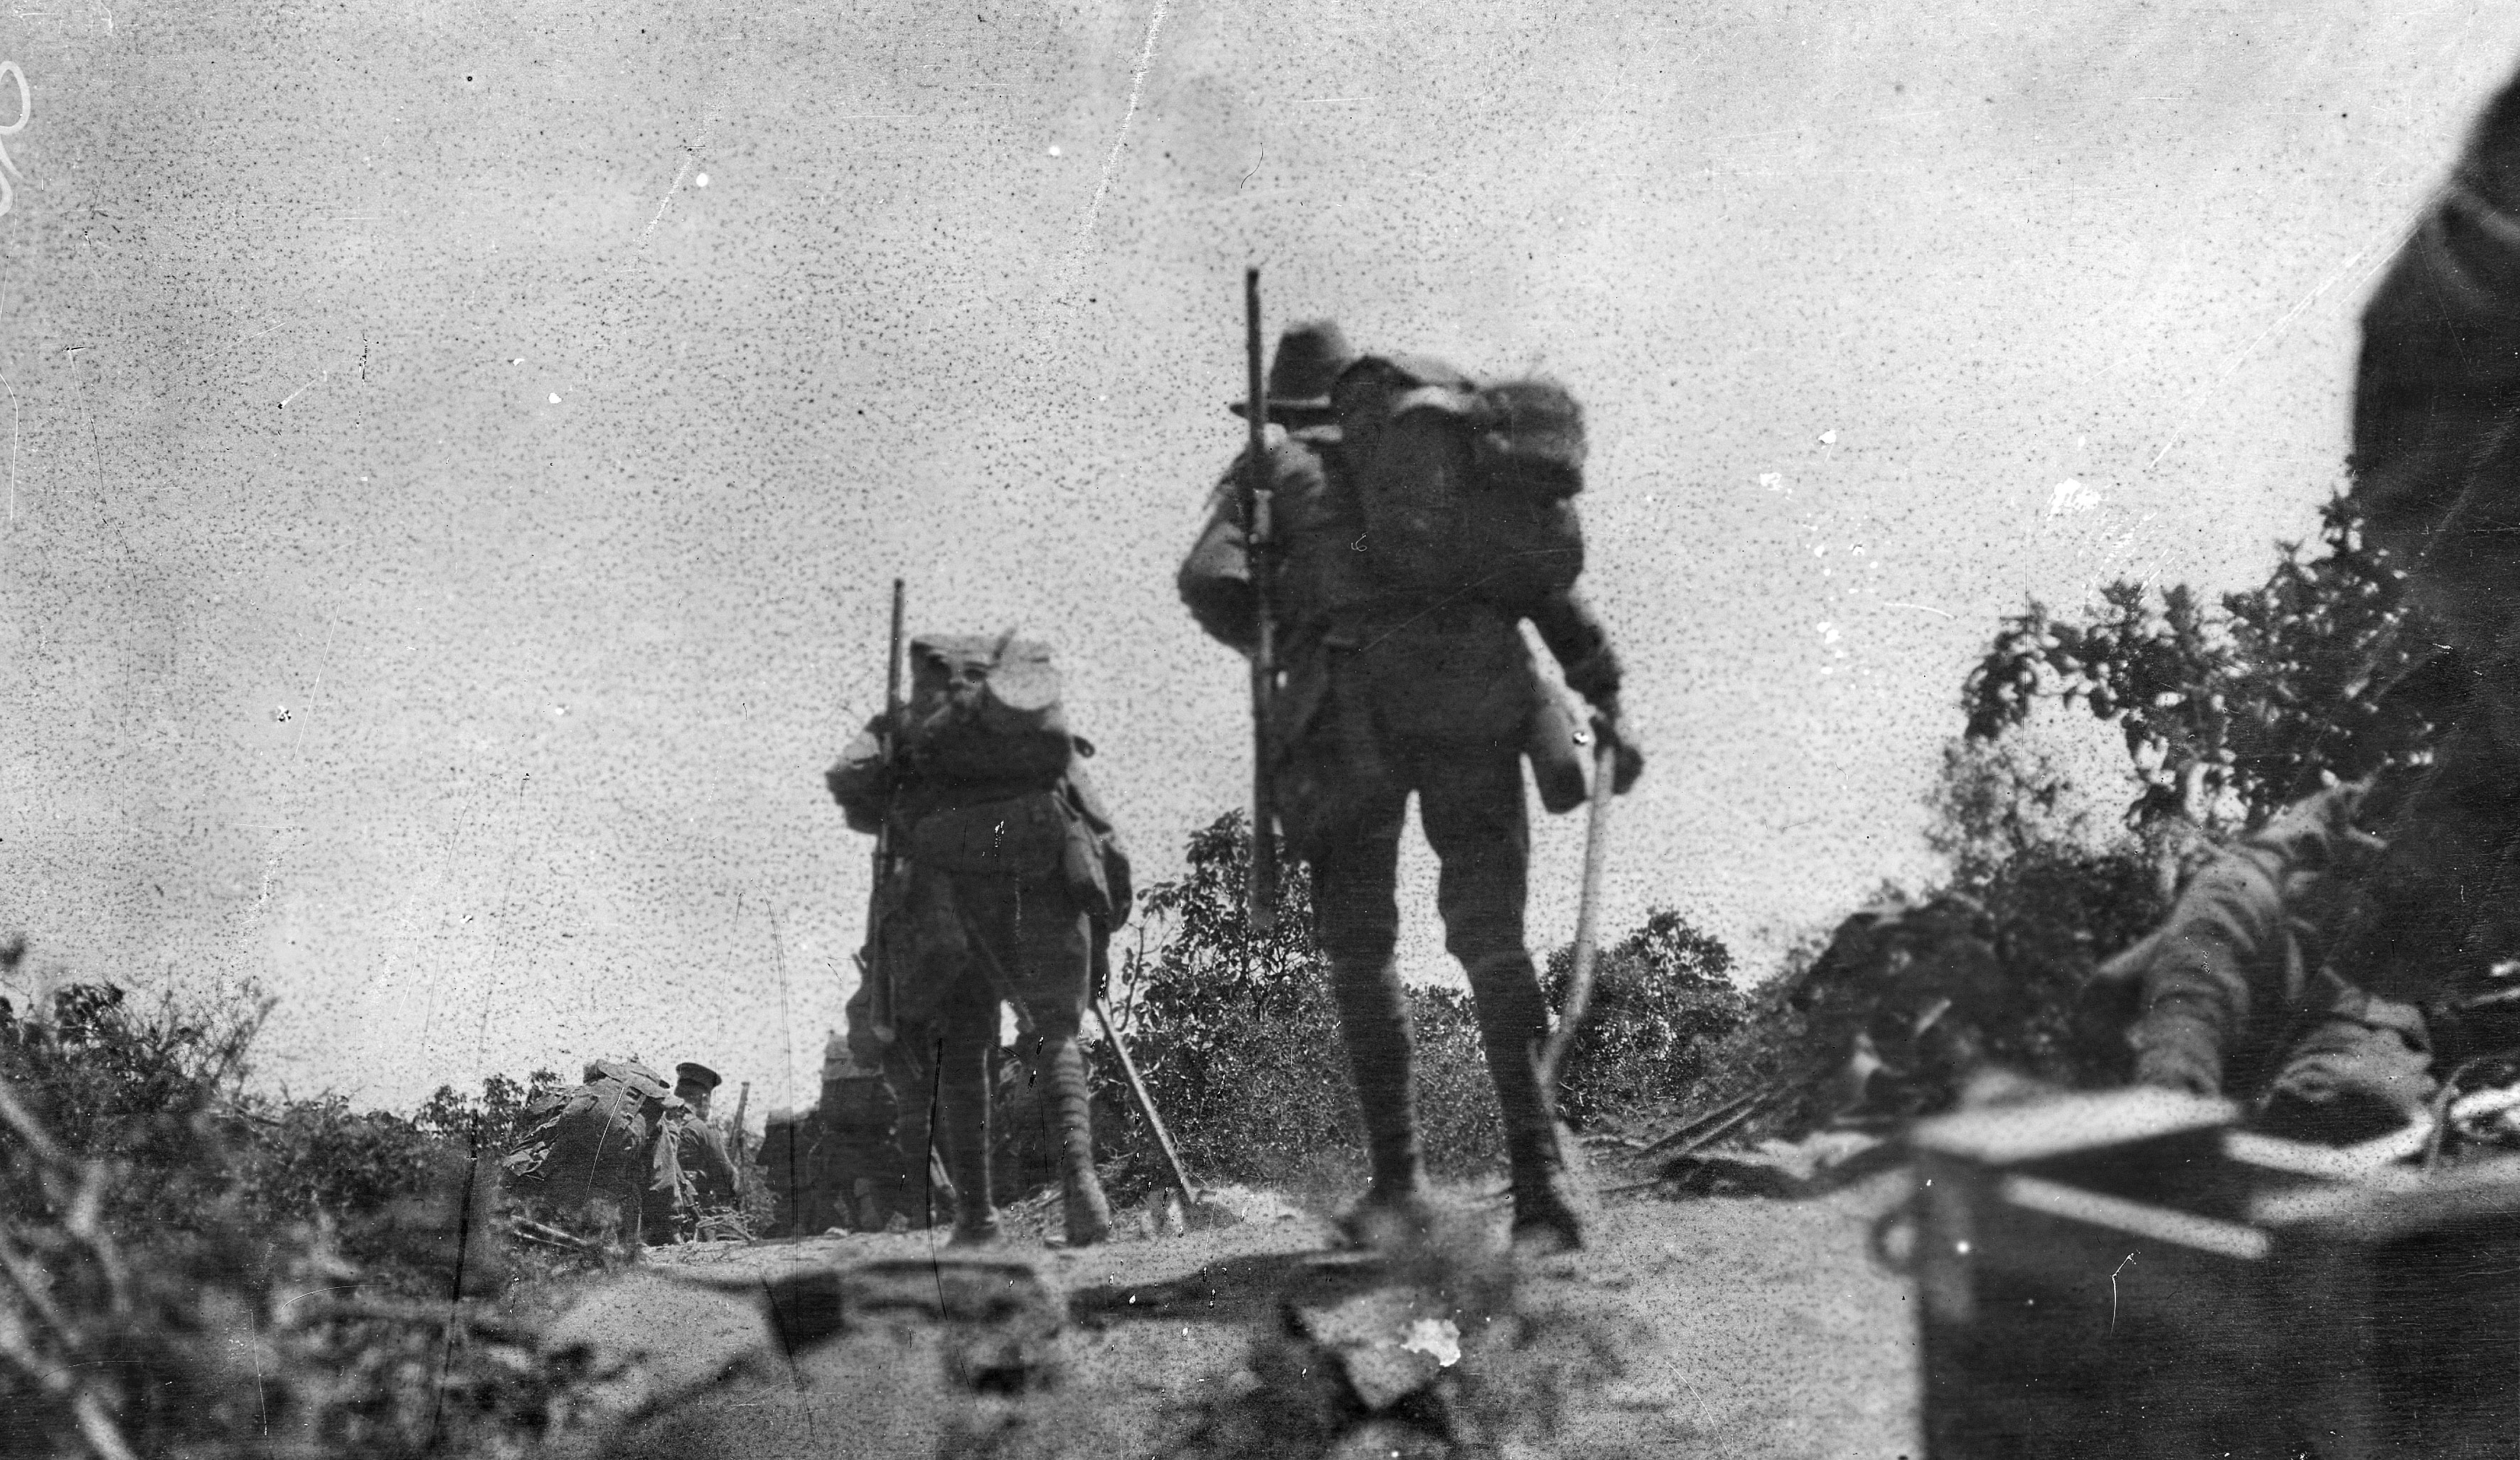 How did the Gallipoli campaign change Australia's experience of war and build a national identity?